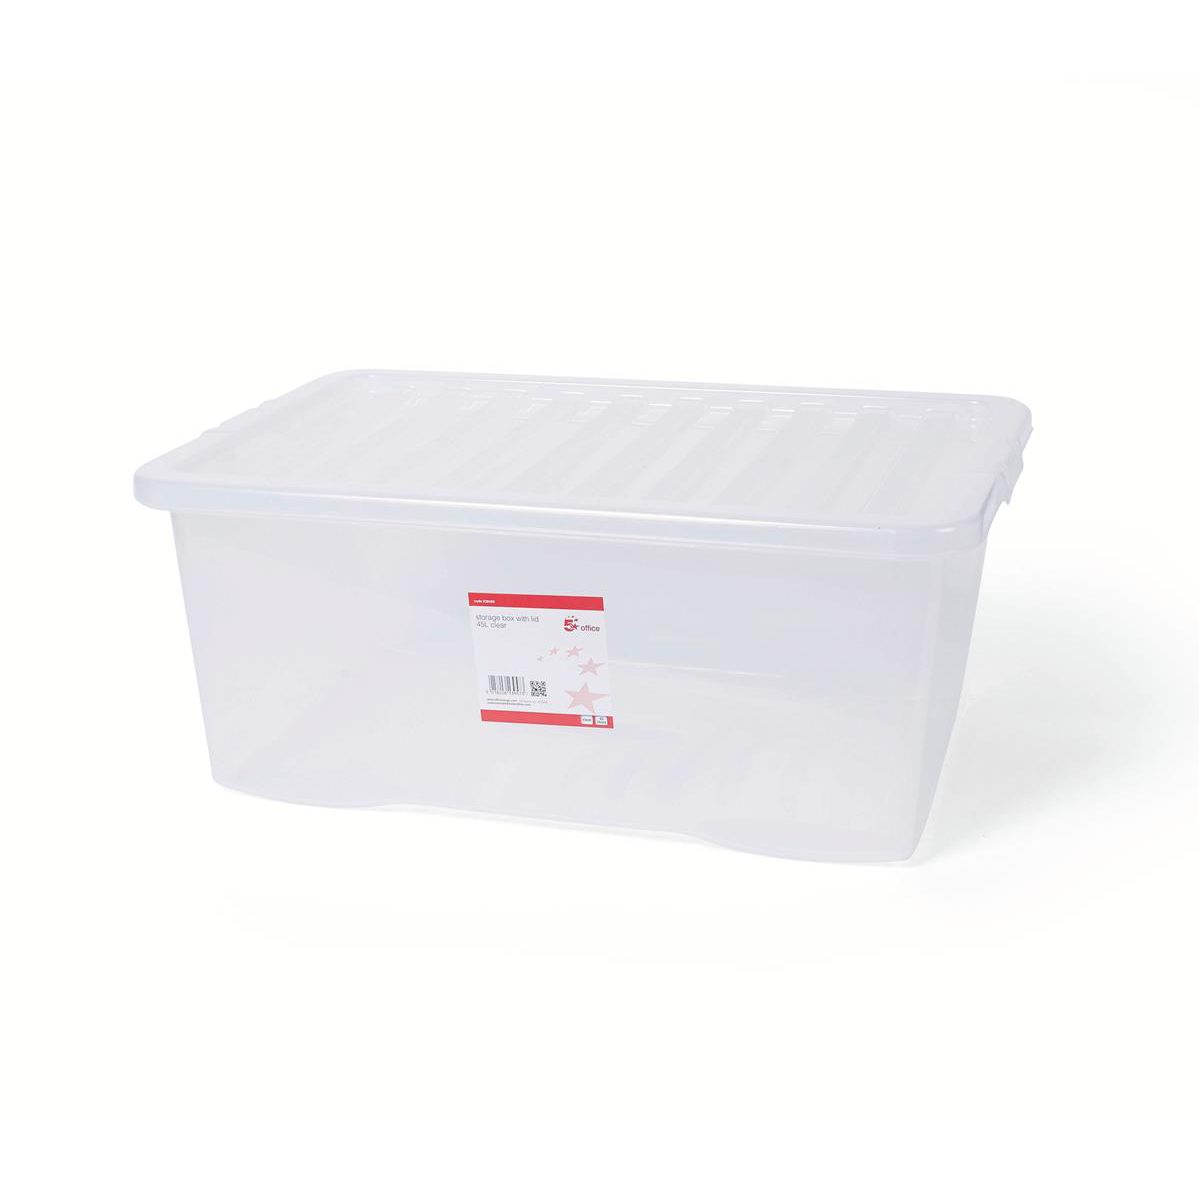 Storage Boxes 5 Star Office Storage Box Plastic with Lid Stackable 45 Litre Clear